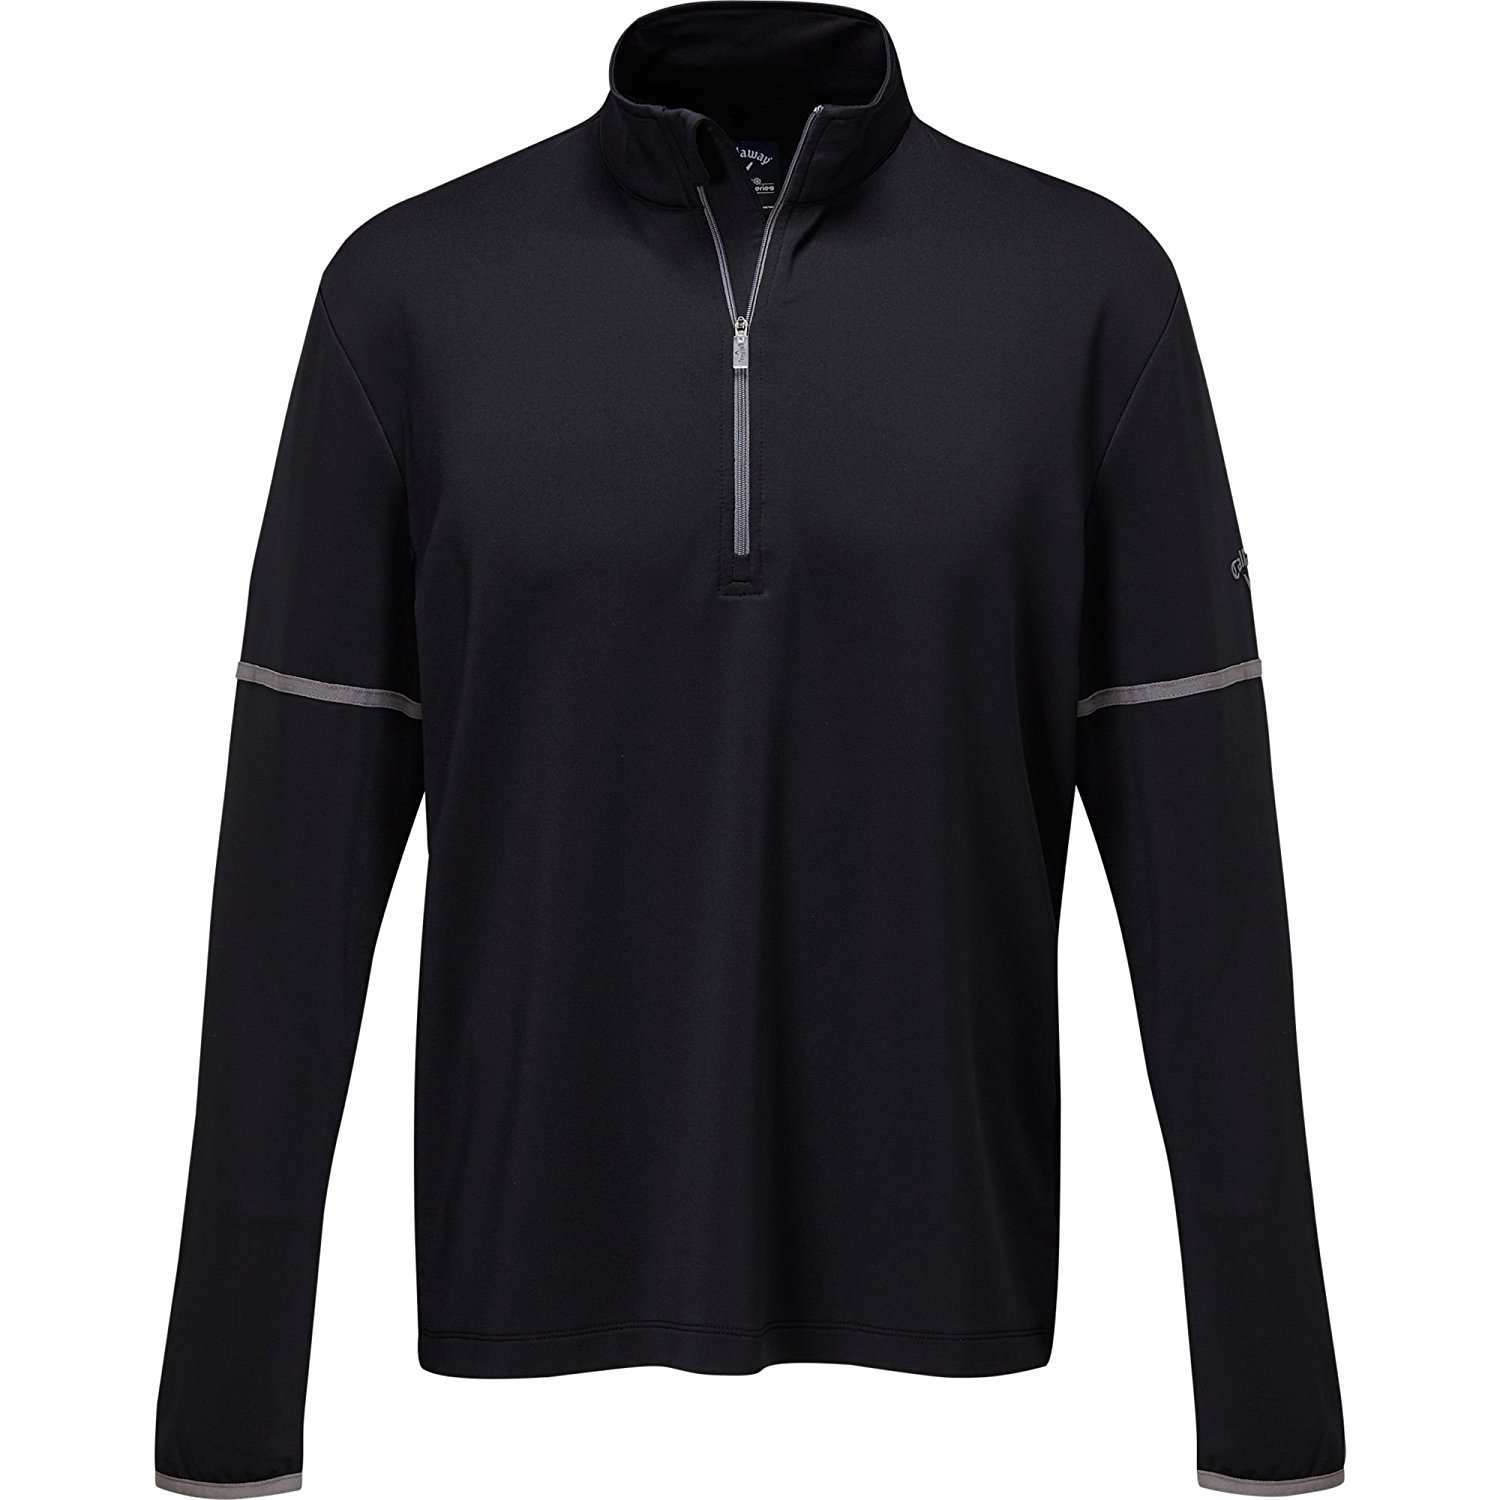 Callaway Men's Outlast Premium 1/4-Zip Midlayer Long Sleeve, Caviar, XX-Large